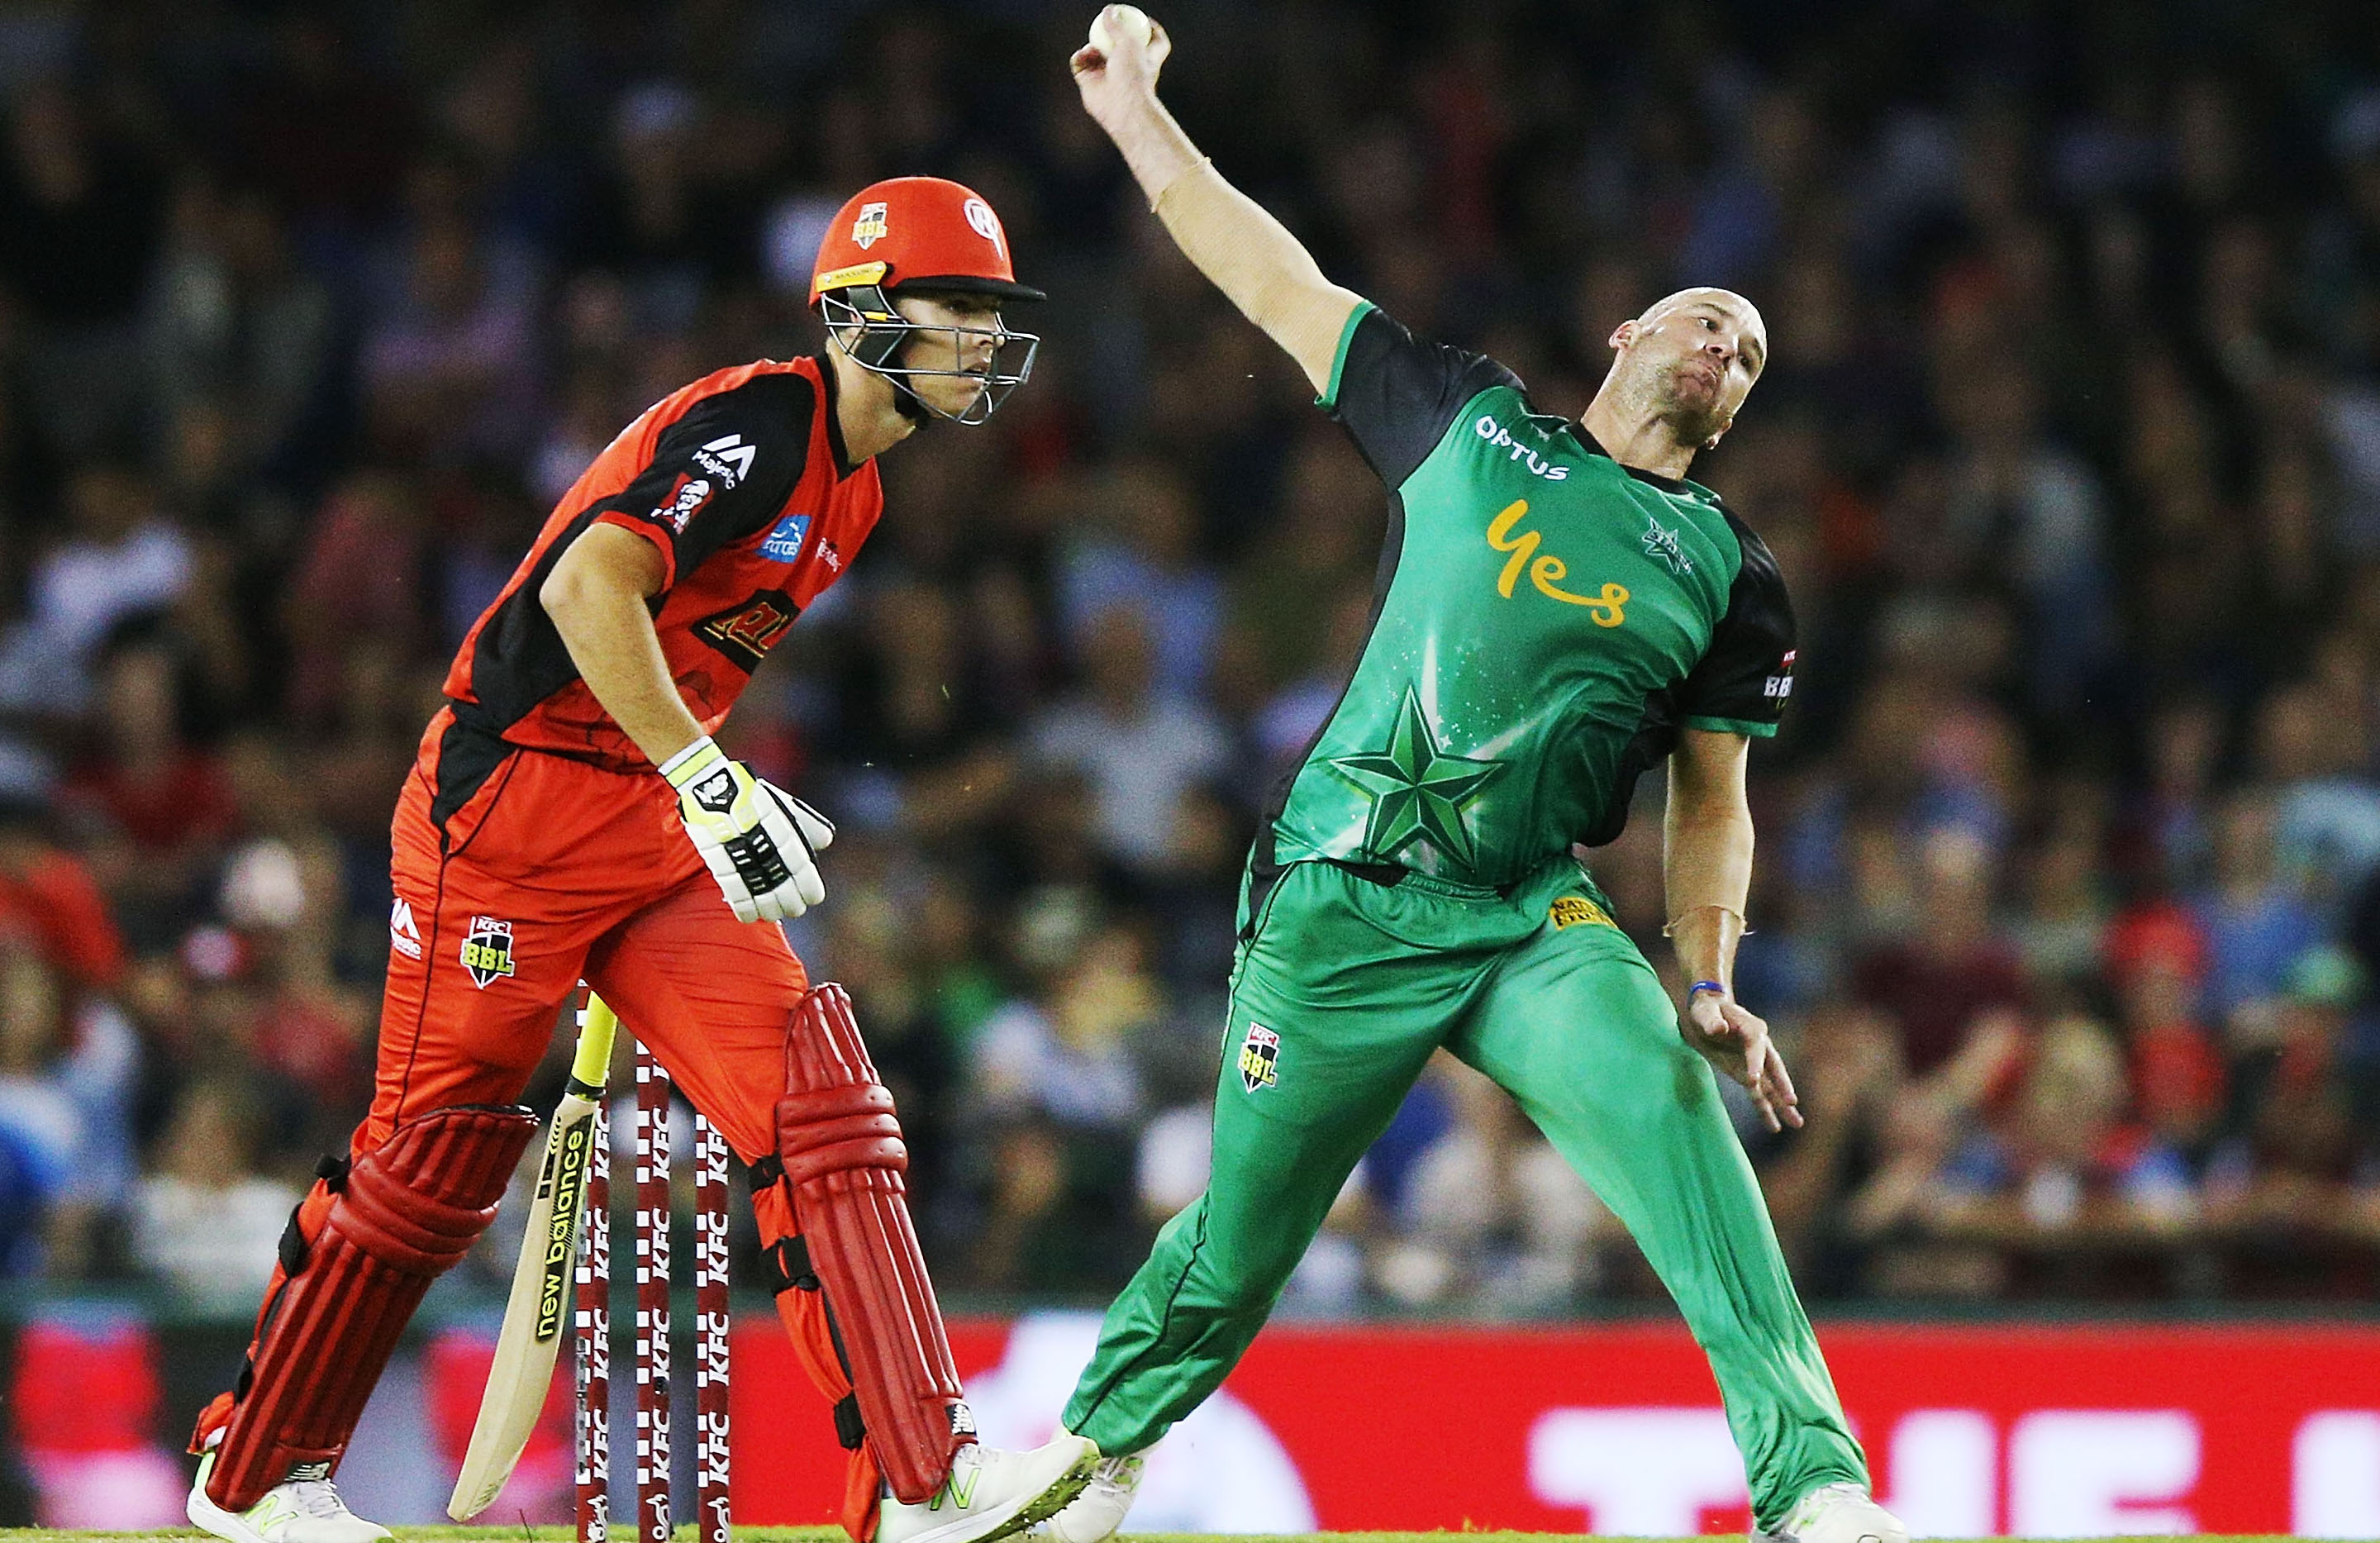 John Hastings in full flight during his days at the Melbourne Stars // Getty